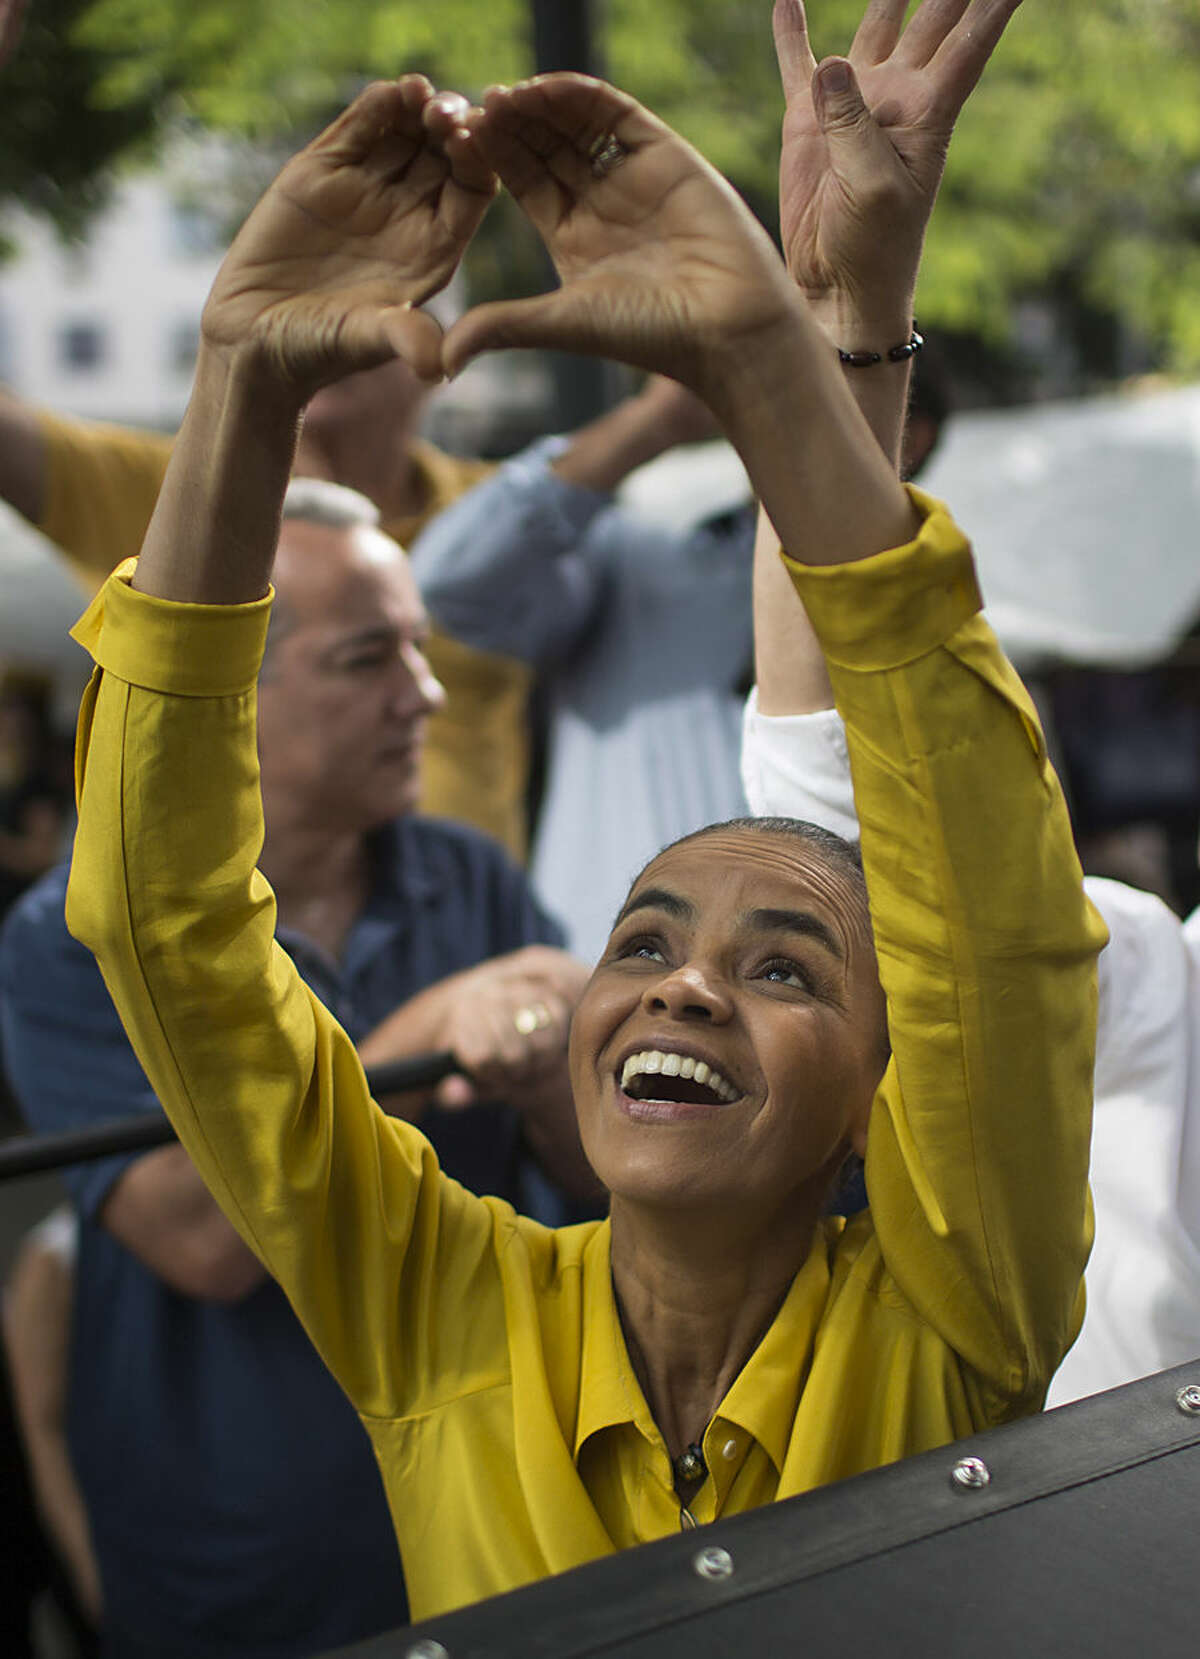 Marina Silva, presidential candidate of the Brazilian Socialist Party, PSB, greets supporters at a campaign rally in Rio de Janeiro, Brazil, Friday, Oct. 3, 2014. Silva, who grew up as one of eight children of an impoverished rubber tapper on a plantation deep in Brazil's Amazon, went on to become a local lawmaker, senator, and then Environment Minister during the presidency of President Luiz Inacio Lula da Silva. Today Silva is running for president in Brazil's Oct. 5 general elections. (AP Photo/Felipe Dana)